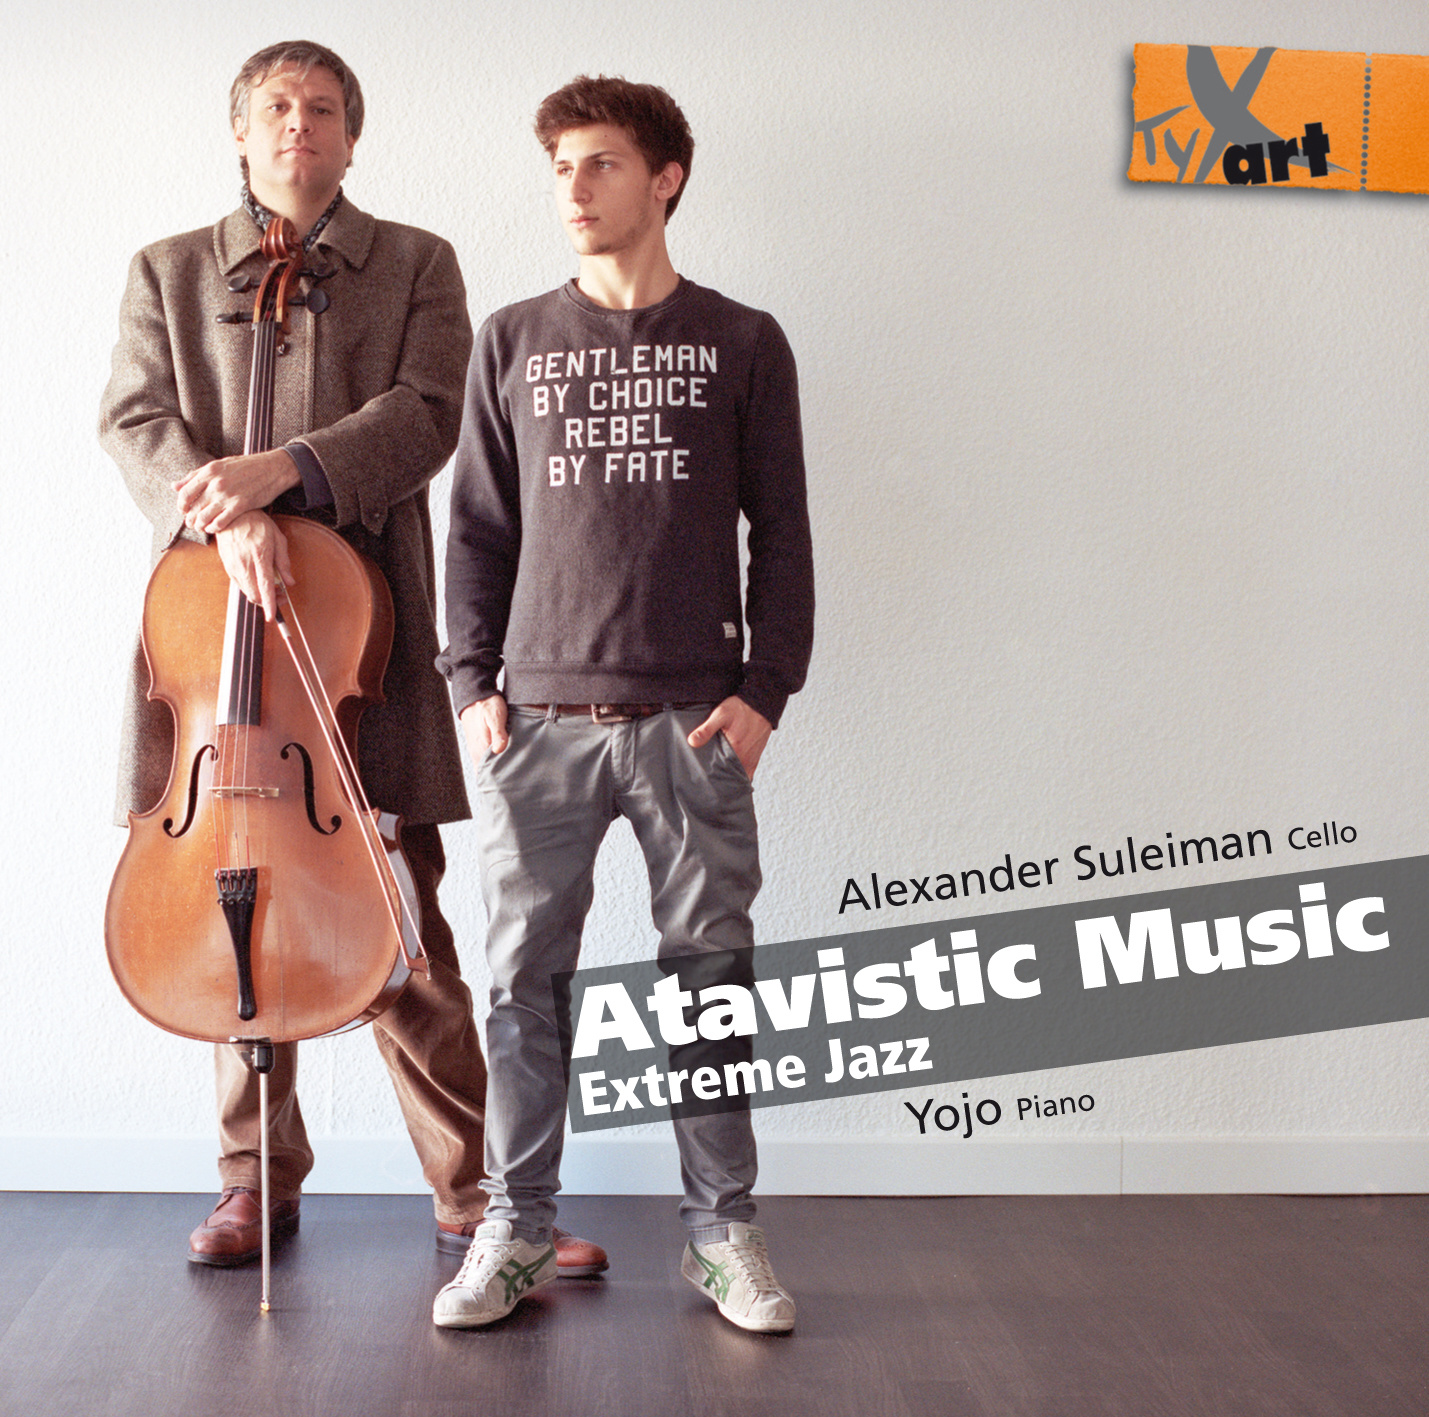 Extreme Jazz - Alexander Suleiman, Cello - Yojo, Piano